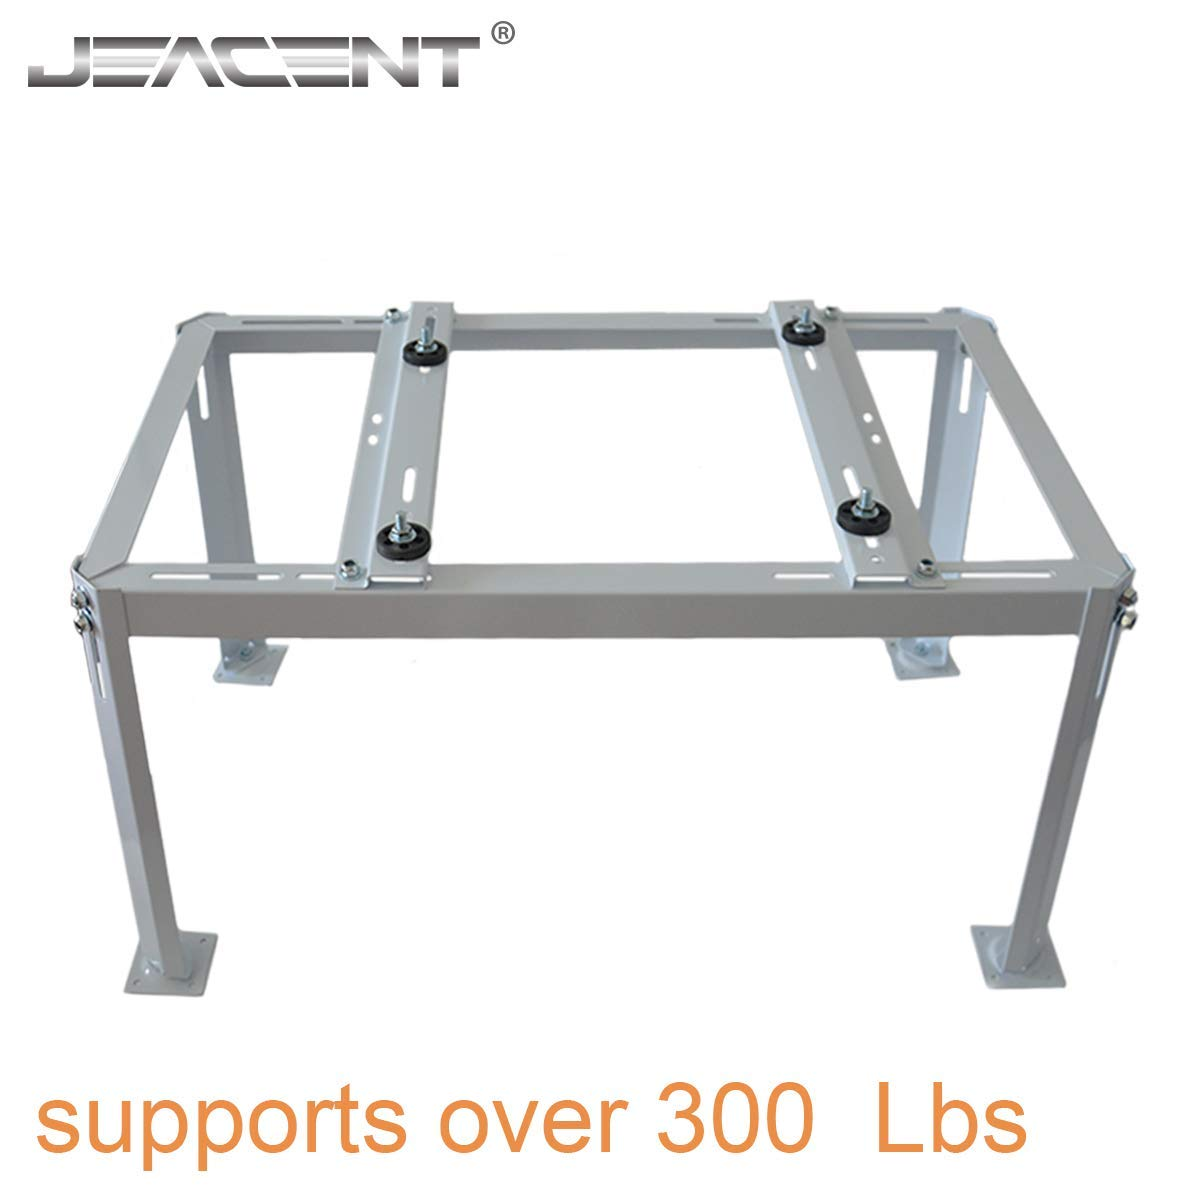 Jeacent Ground Stand Bracket for Mini Split,Air Conditioner Mounting Brackets Support by Jeacent